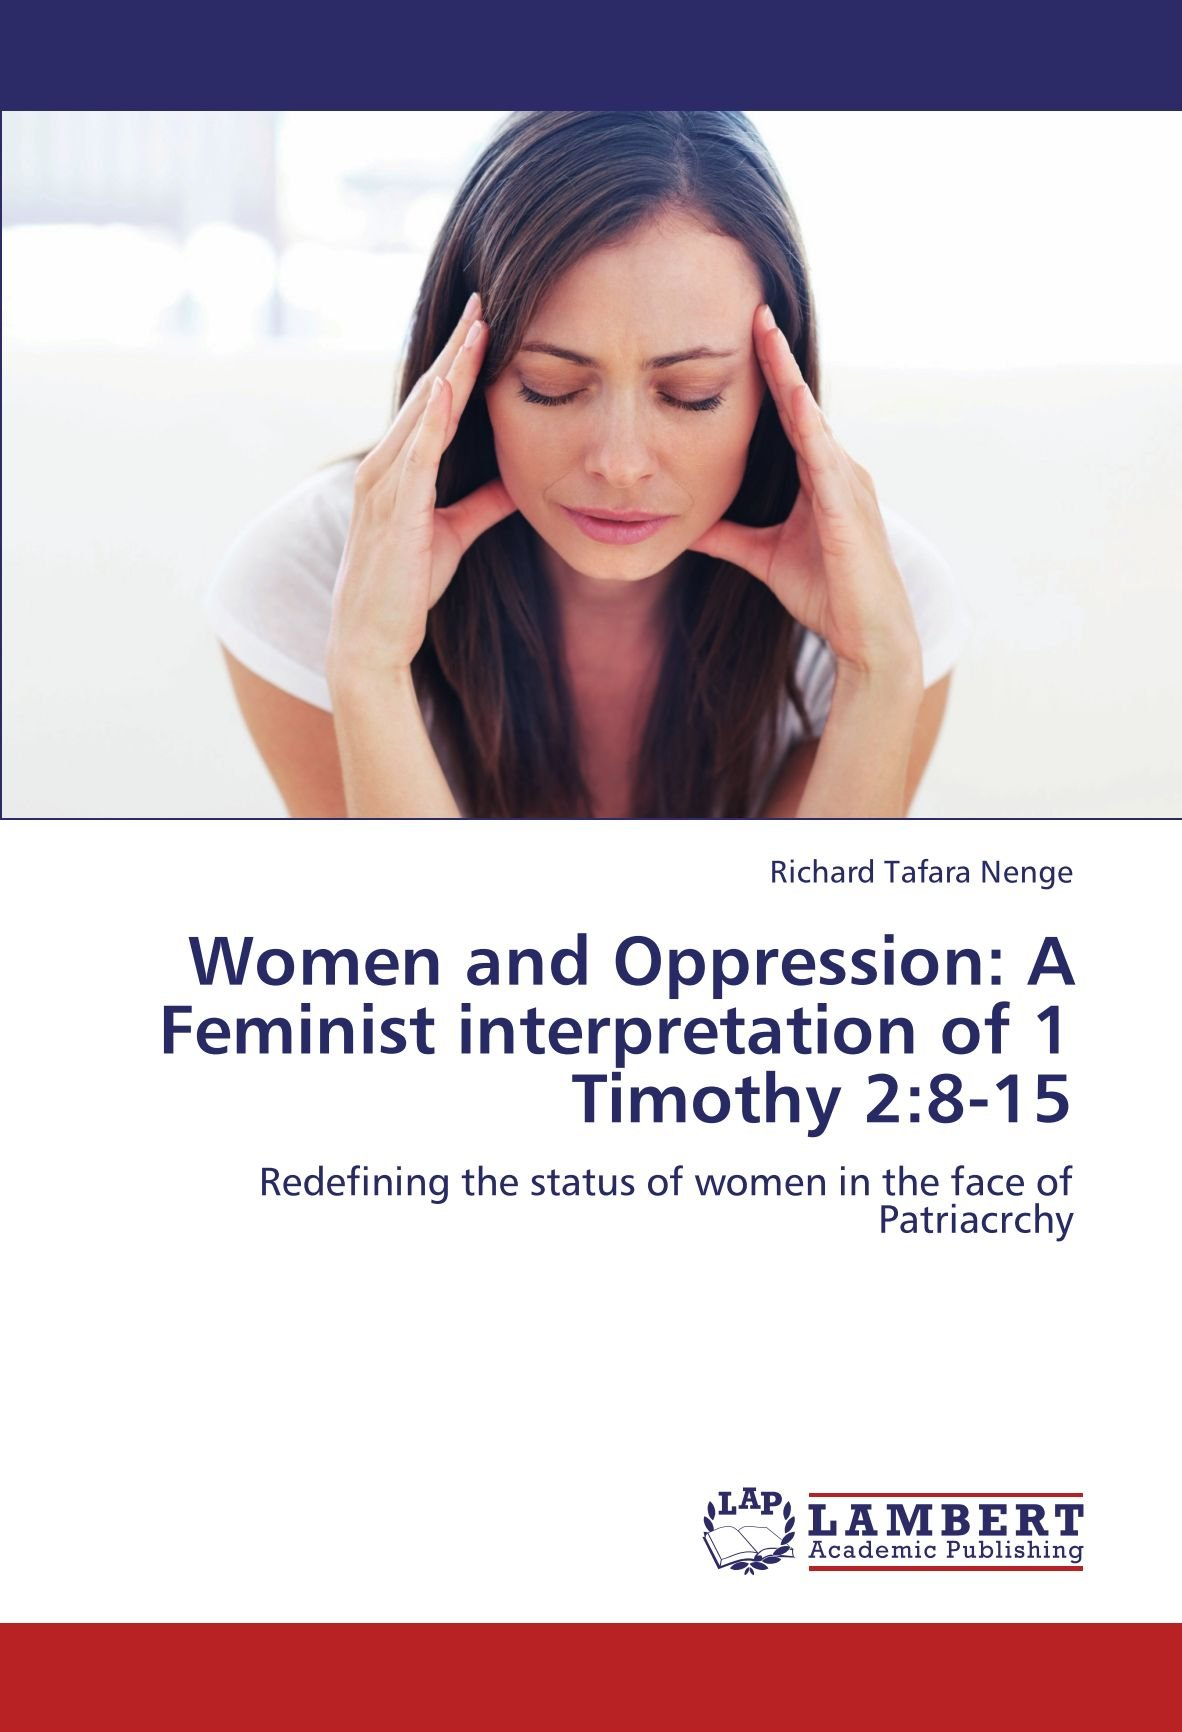 Download Women and Oppression: A Feminist interpretation of 1 Timothy 2:8-15: Redefining the status of women in the face of Patriacrchy PDF